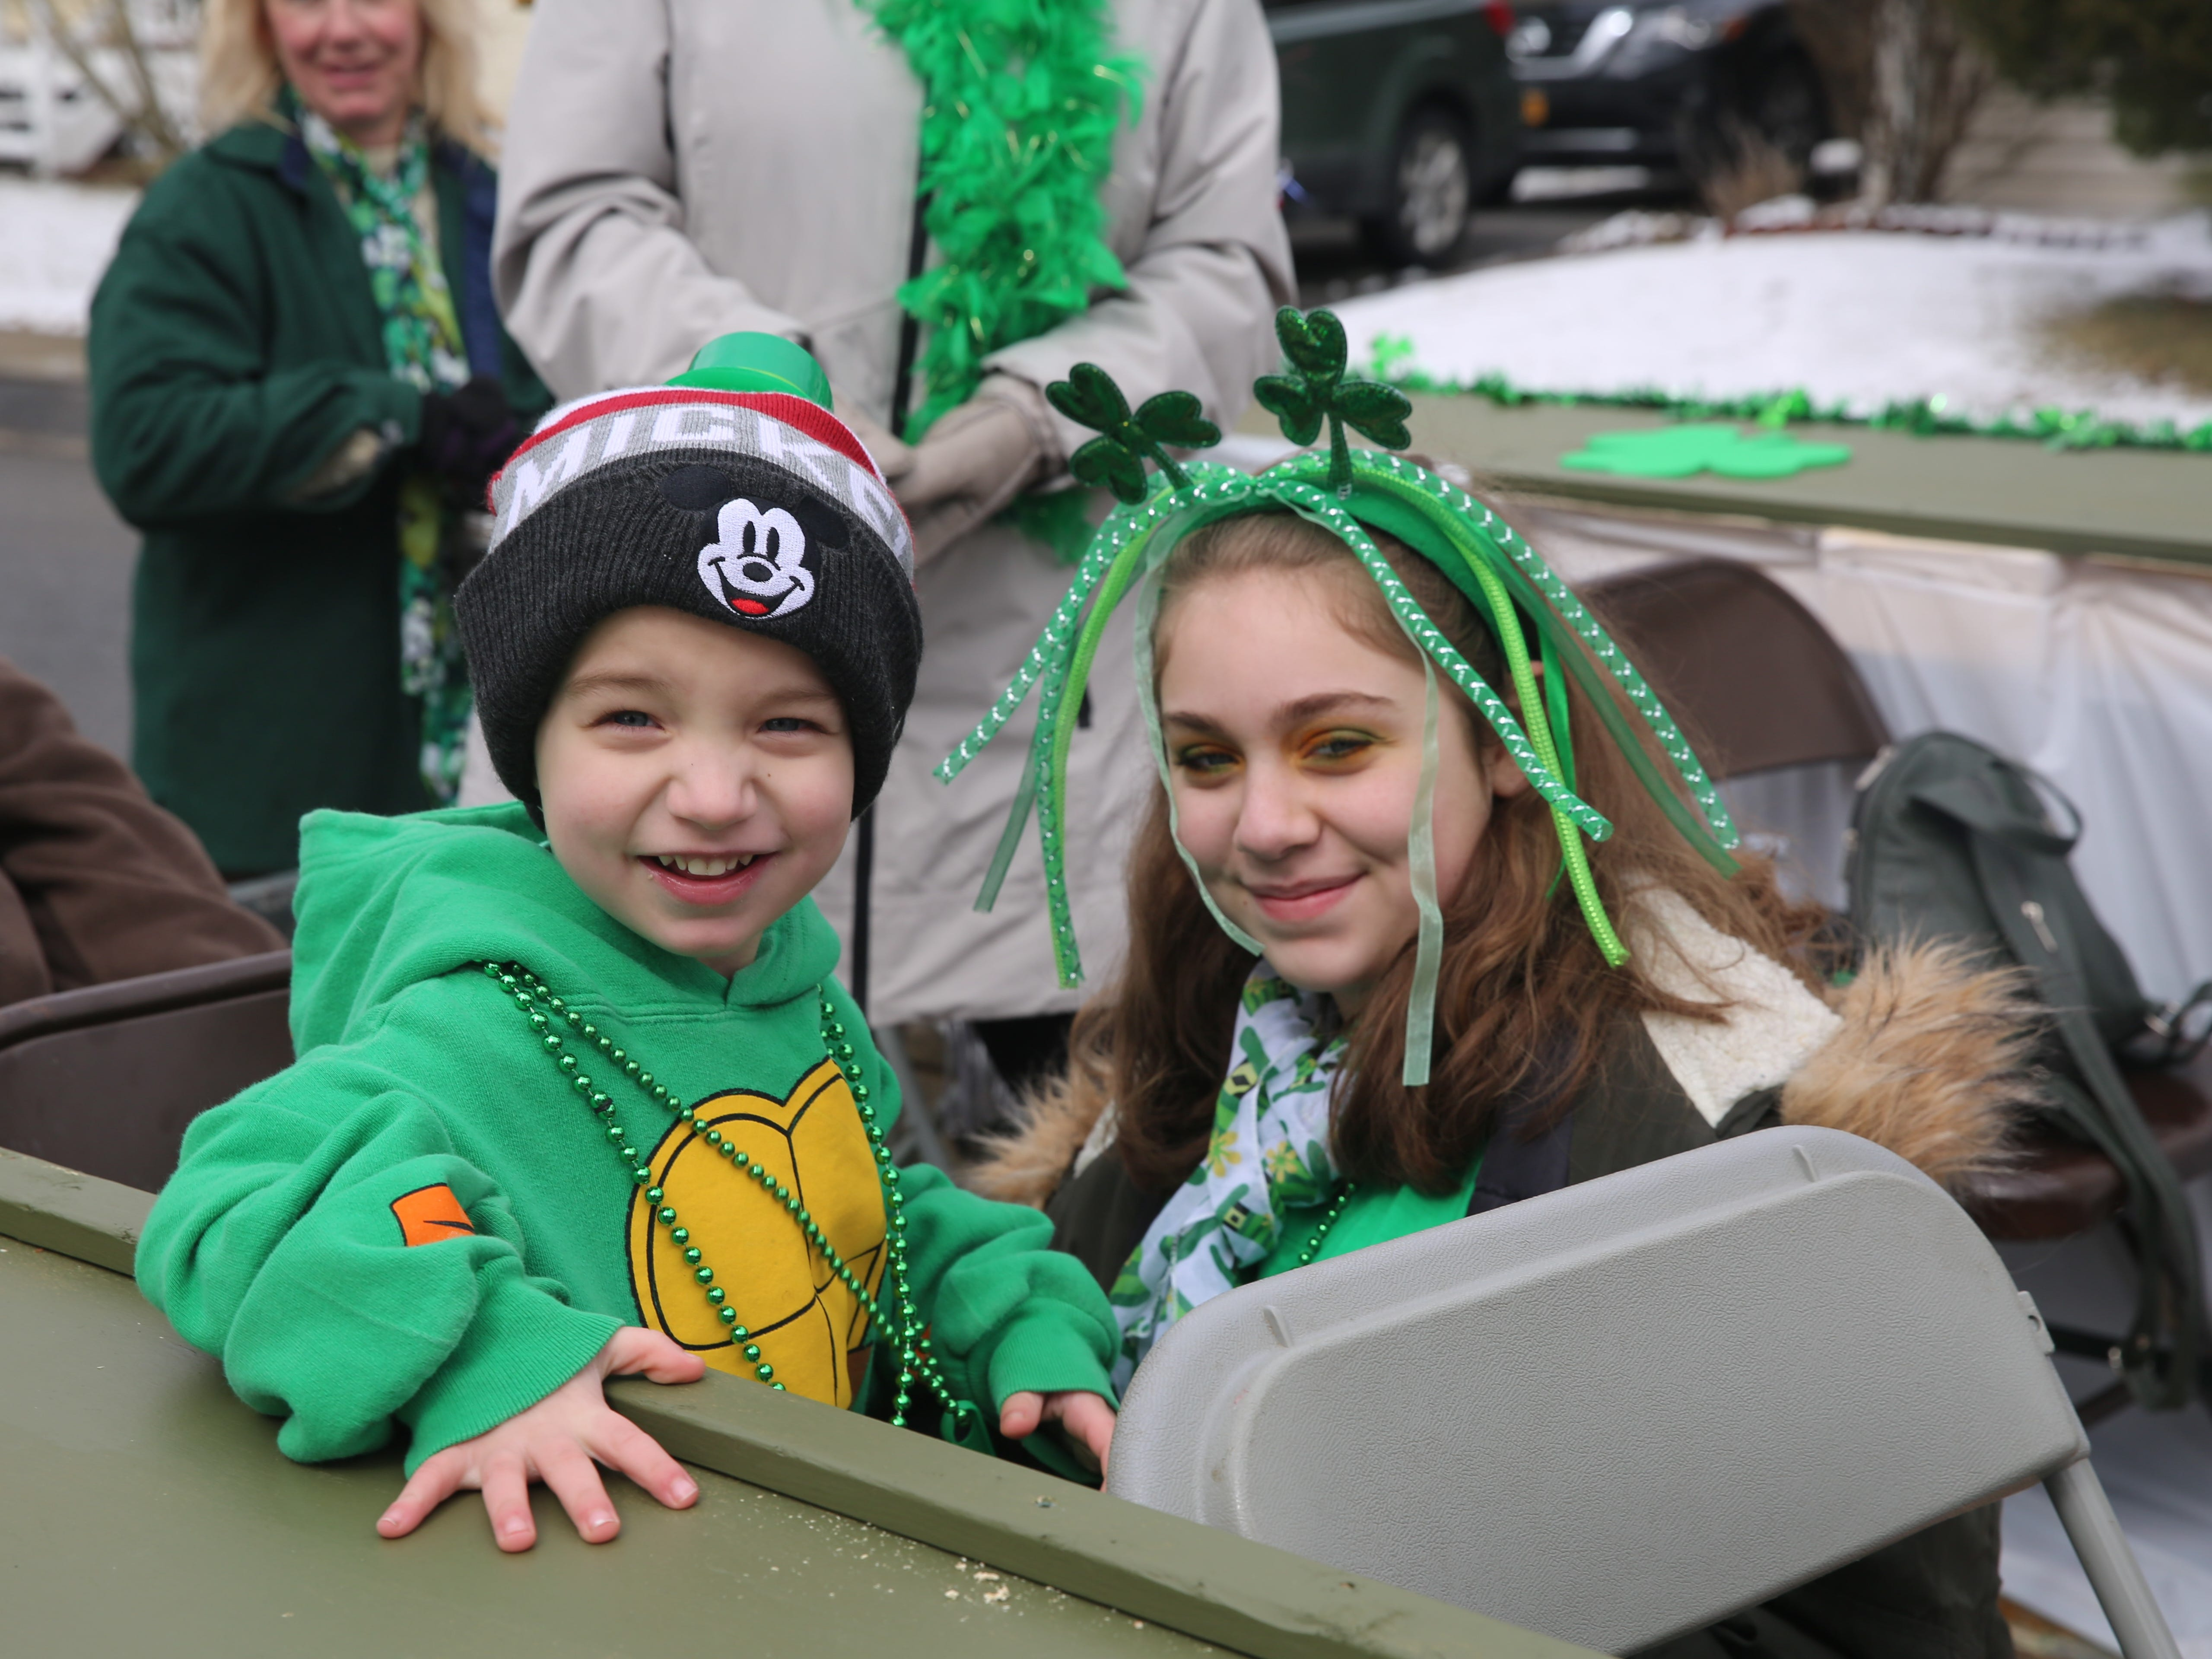 Fishkill residents Cairra Marico (right), 12, and Jayden Wetzelberger, 4, smile from a float in Saturday's Dutchess County St. Patrick's Day Parade. Thousands of people showed up to the event, which shut down West Main Street and other parts of Wappingers Falls on Saturday.